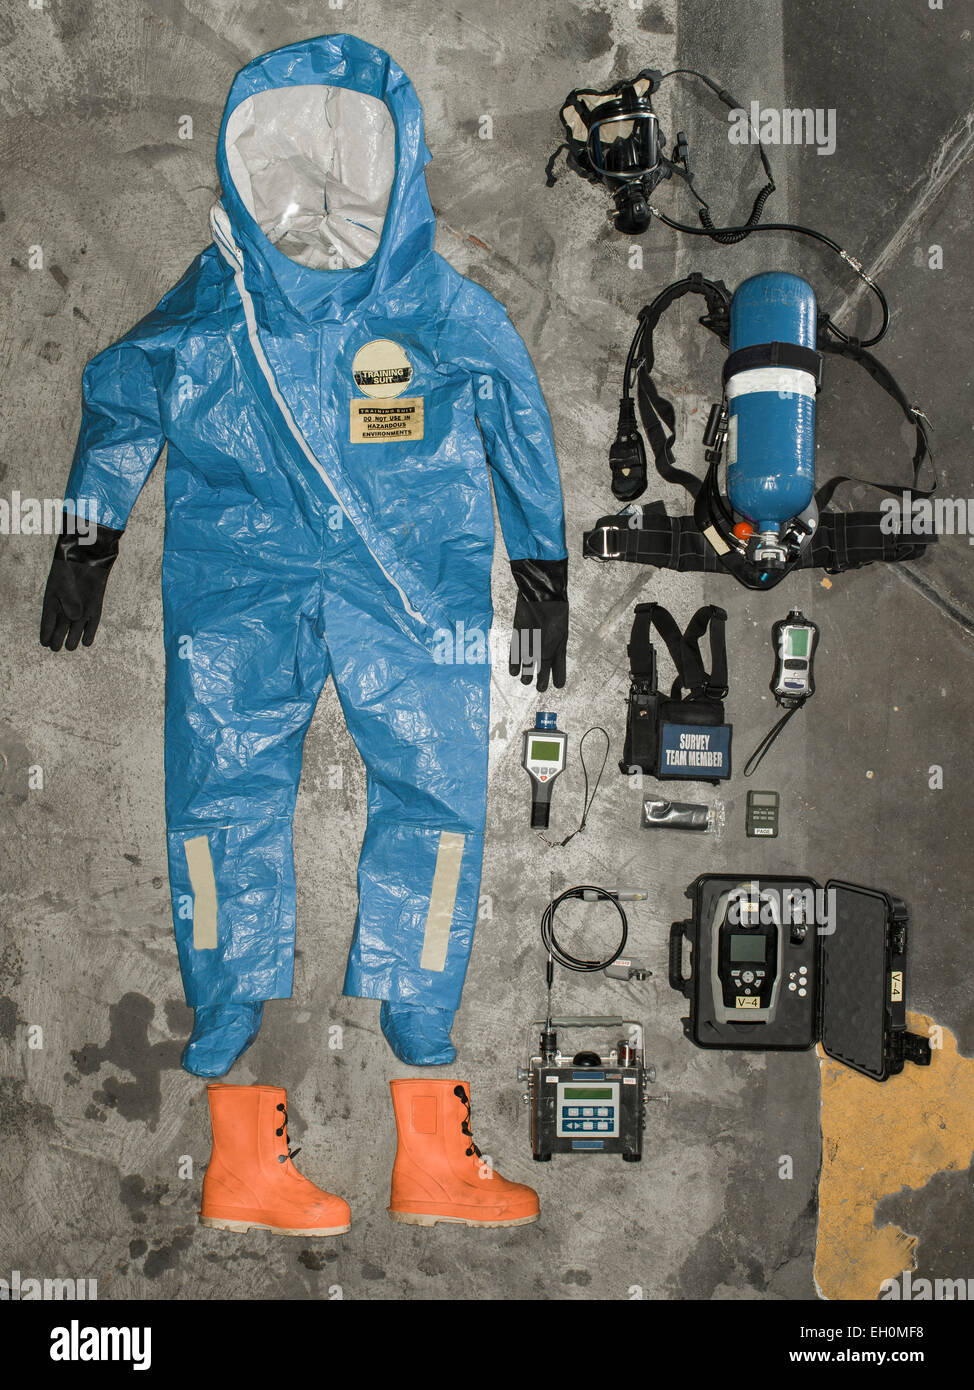 Nuclear radiation suit and accessories hangs on the wall. - Stock Image